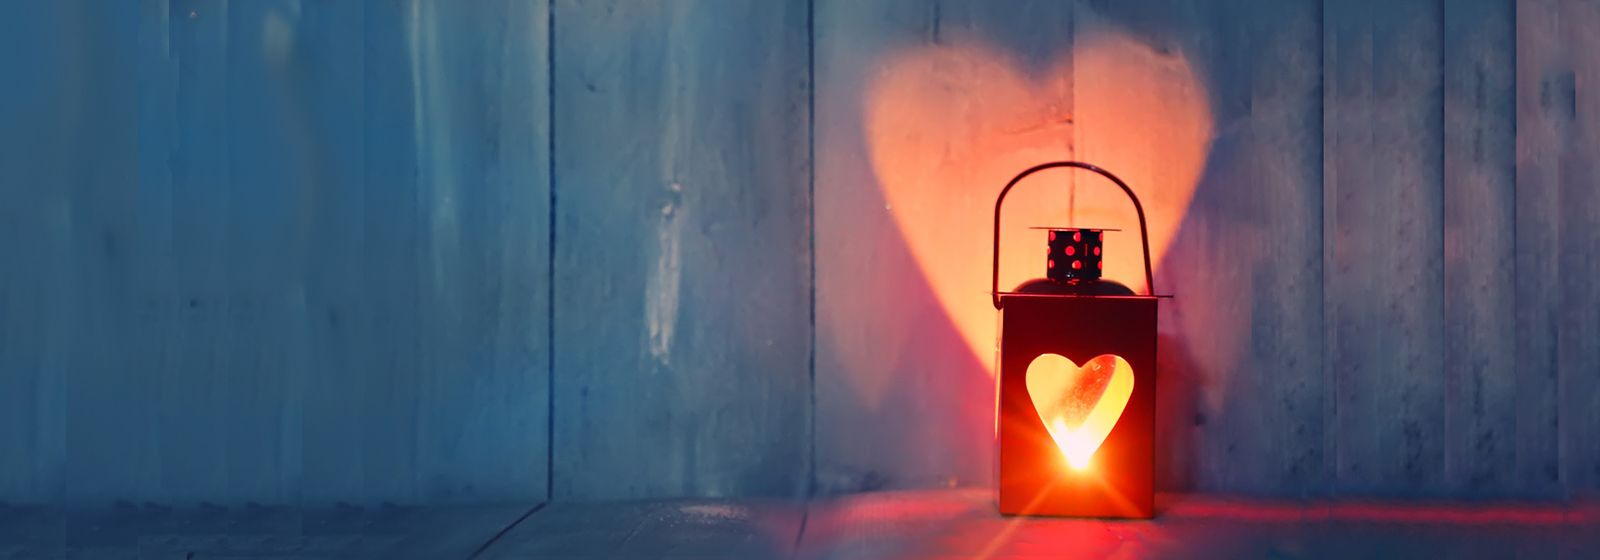 6 ways the electric company can improve your love life